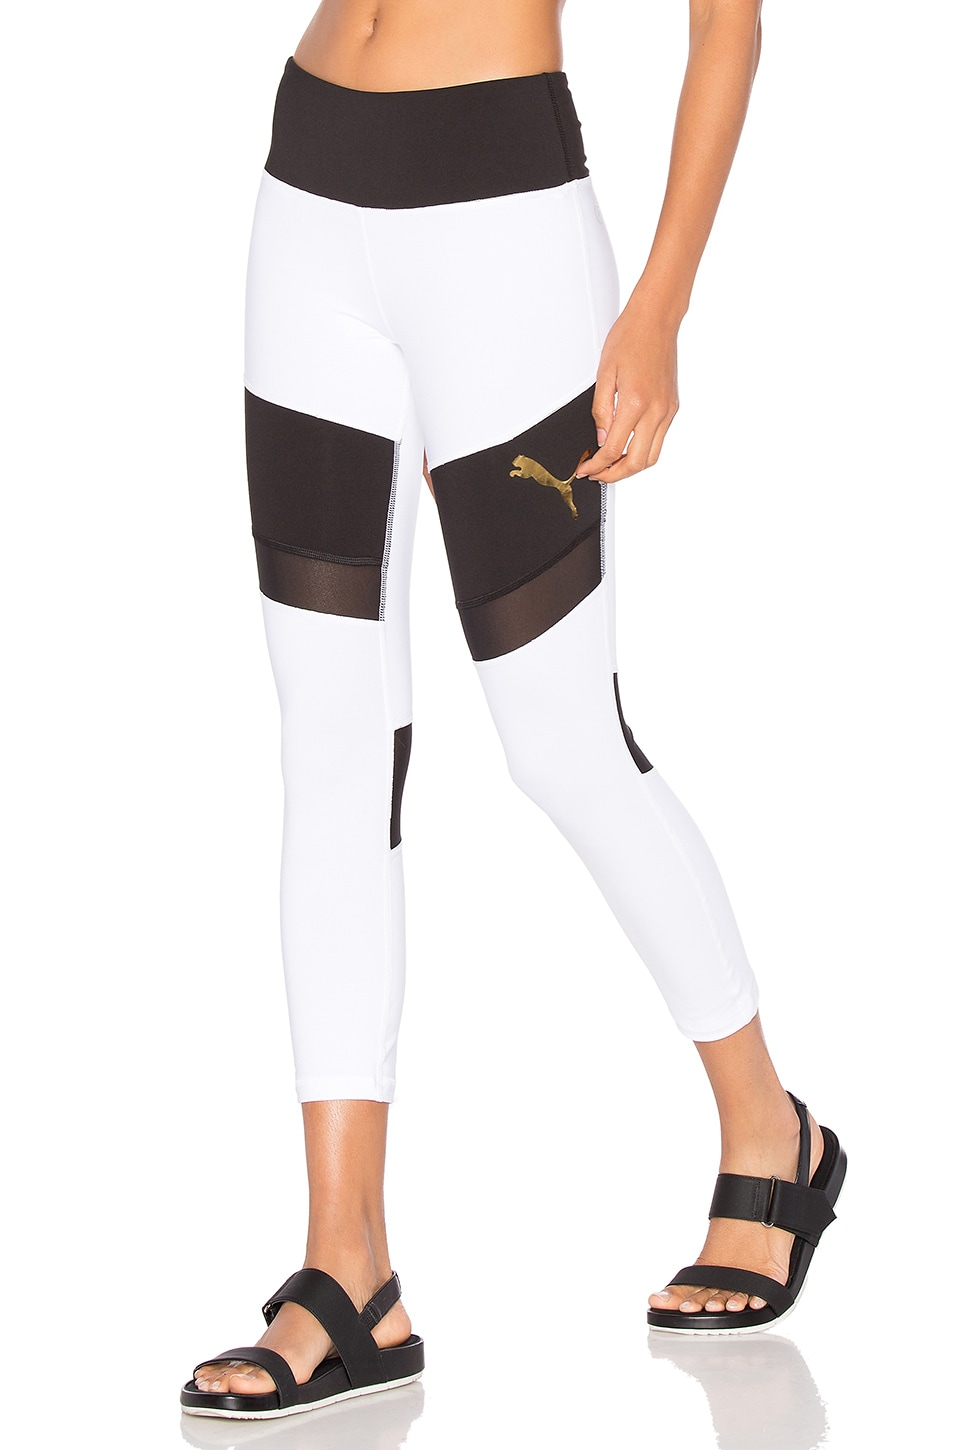 Puma Mixed Material Capri in Puma White & Puma Black